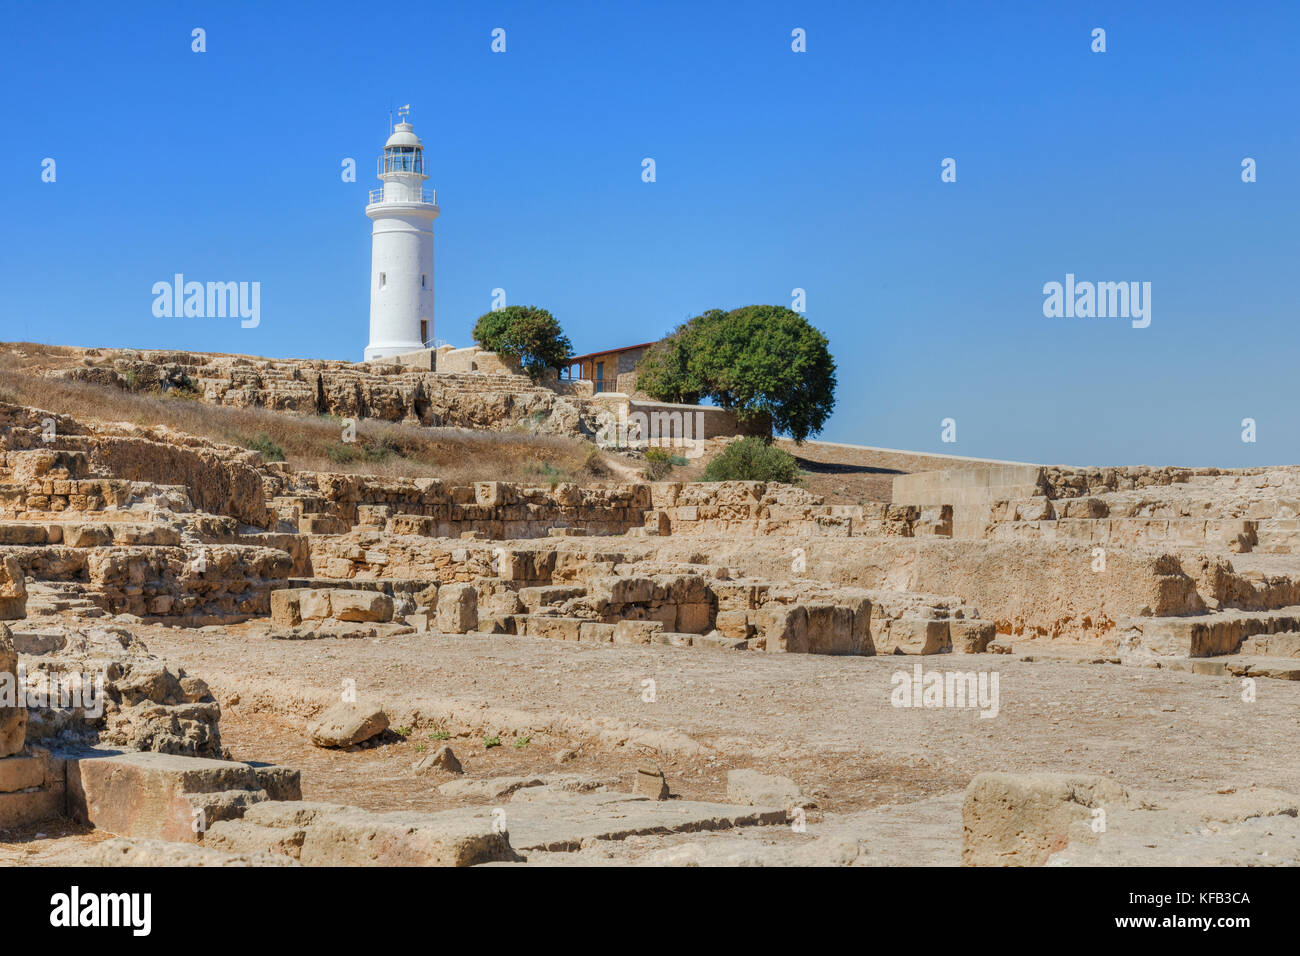 Paphos Archaeological Park, Paphos, Cyprus Stock Photo